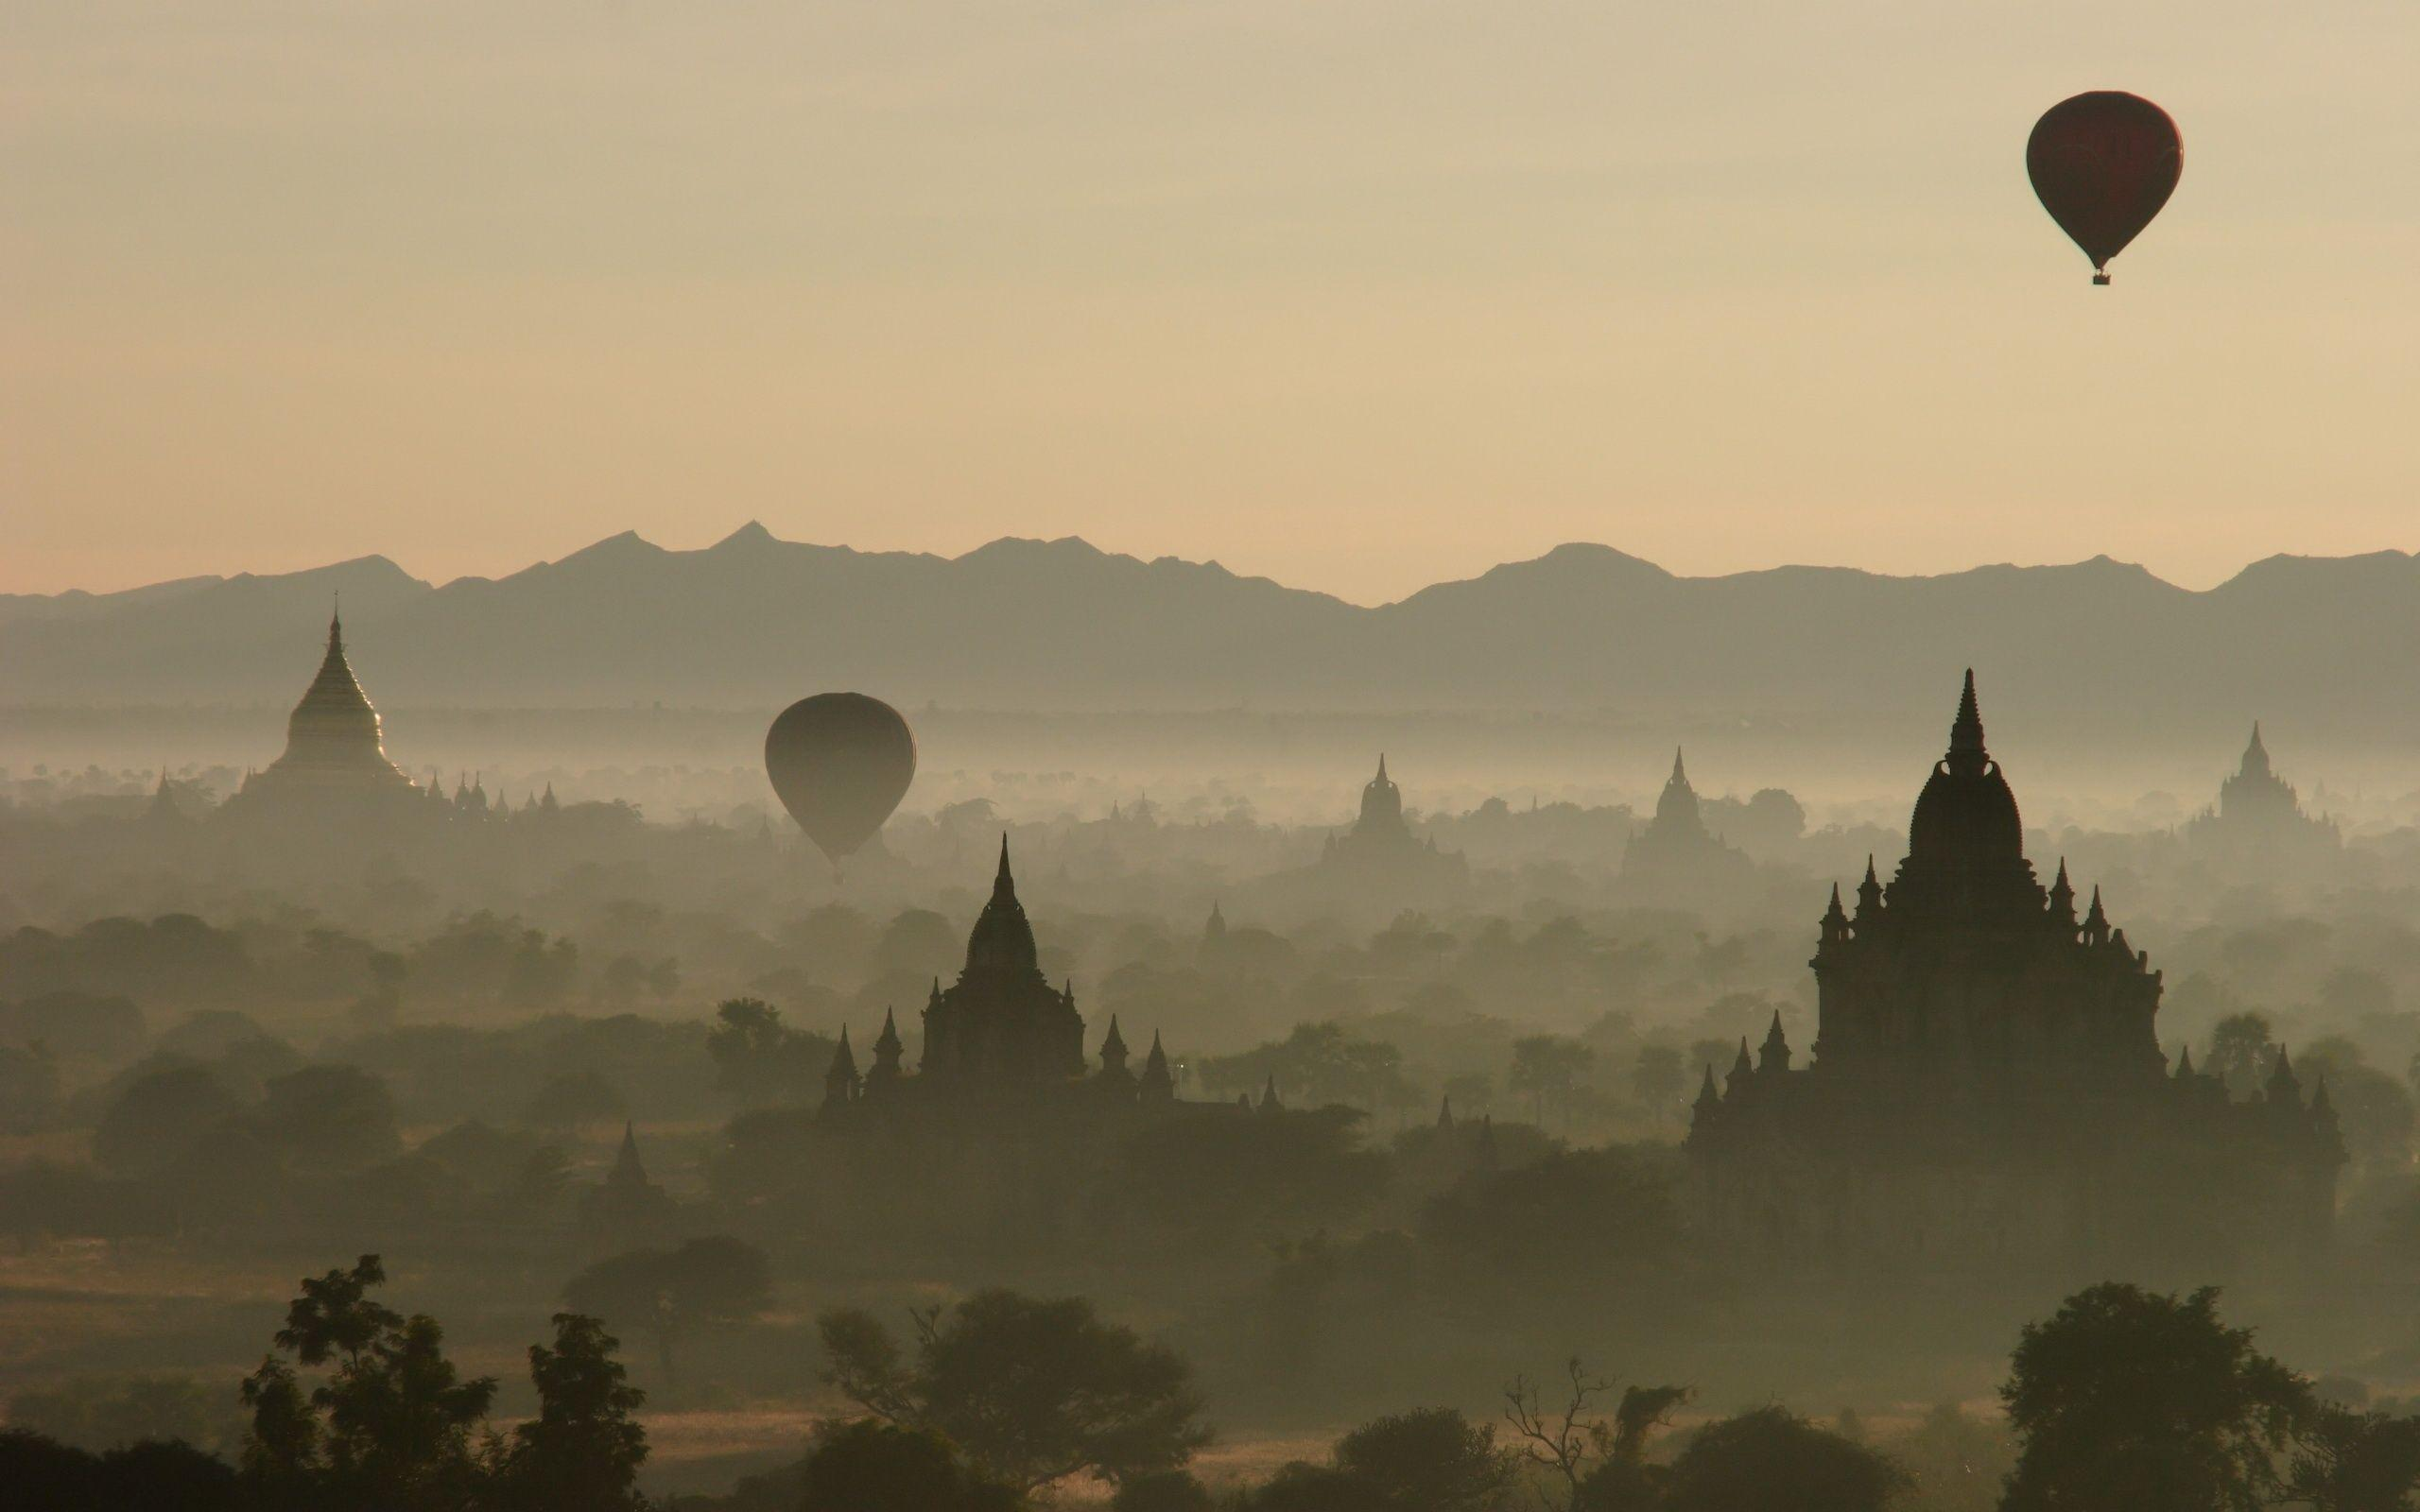 Daily Wallpaper: Baloons over Bagan, Burma